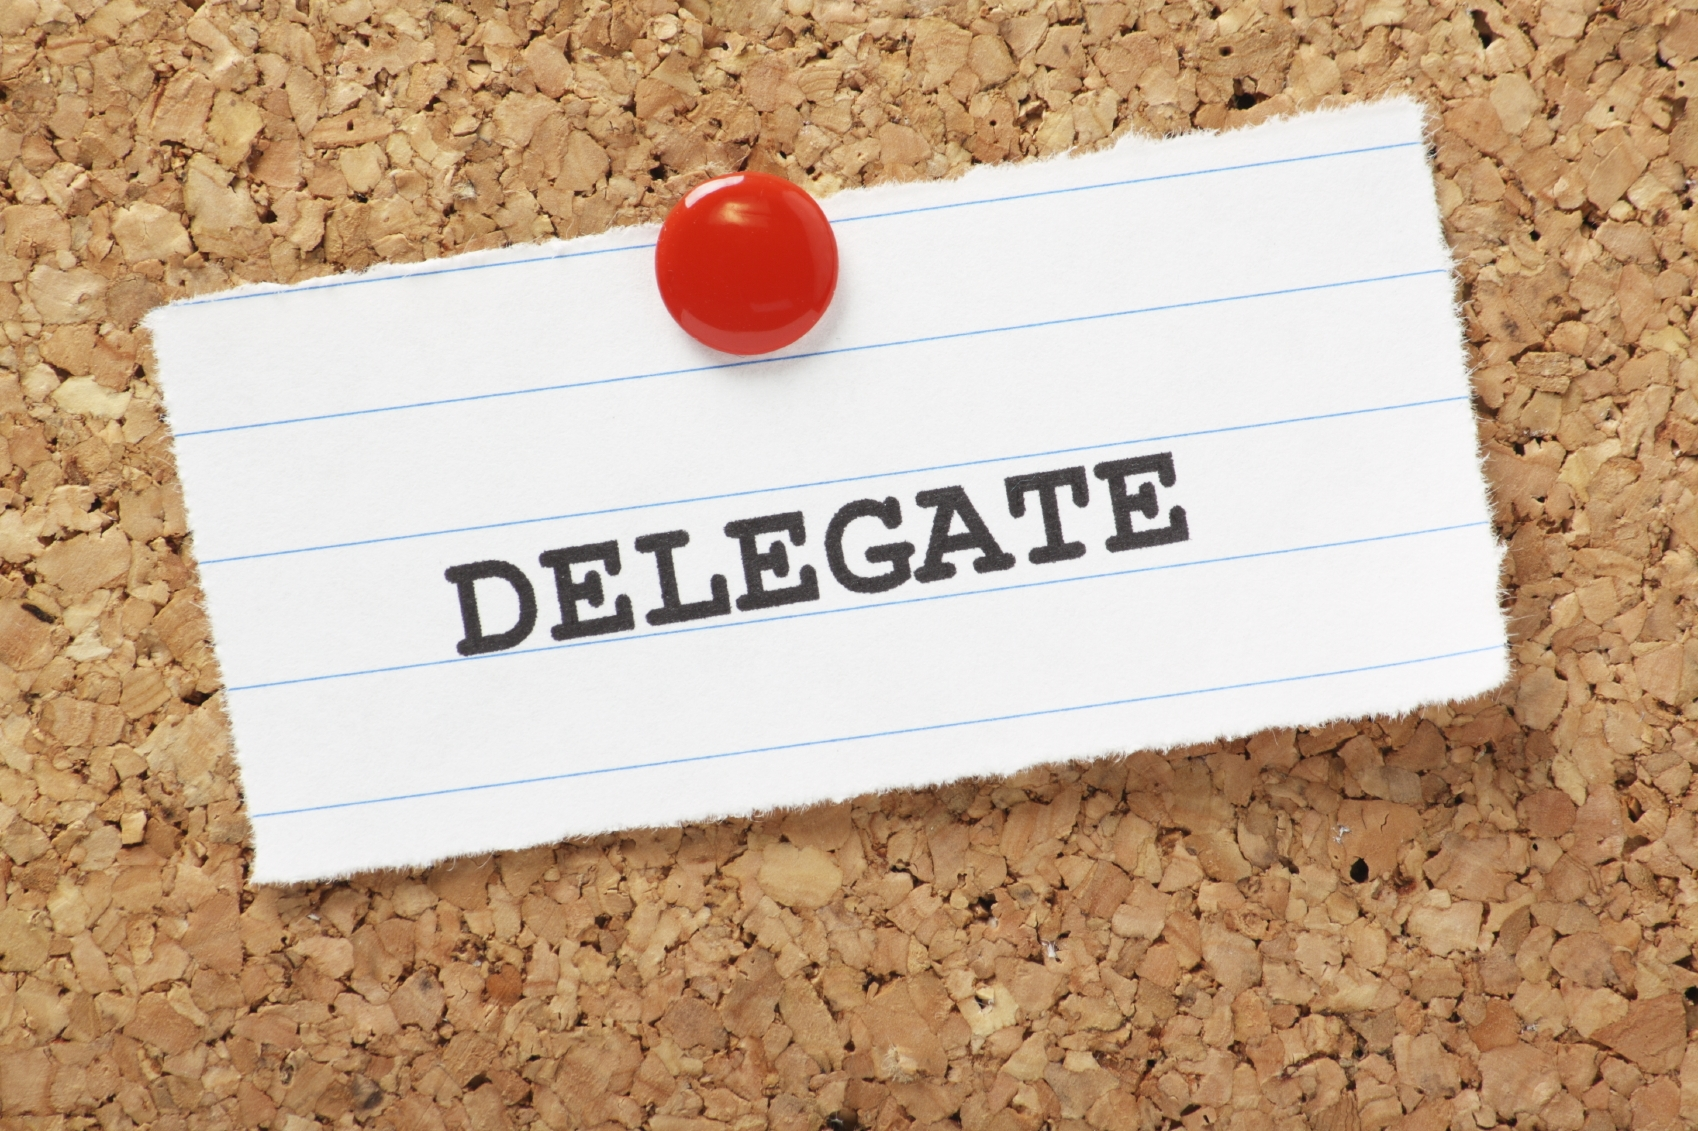 Delegate Delegation Of Performance Of Duties